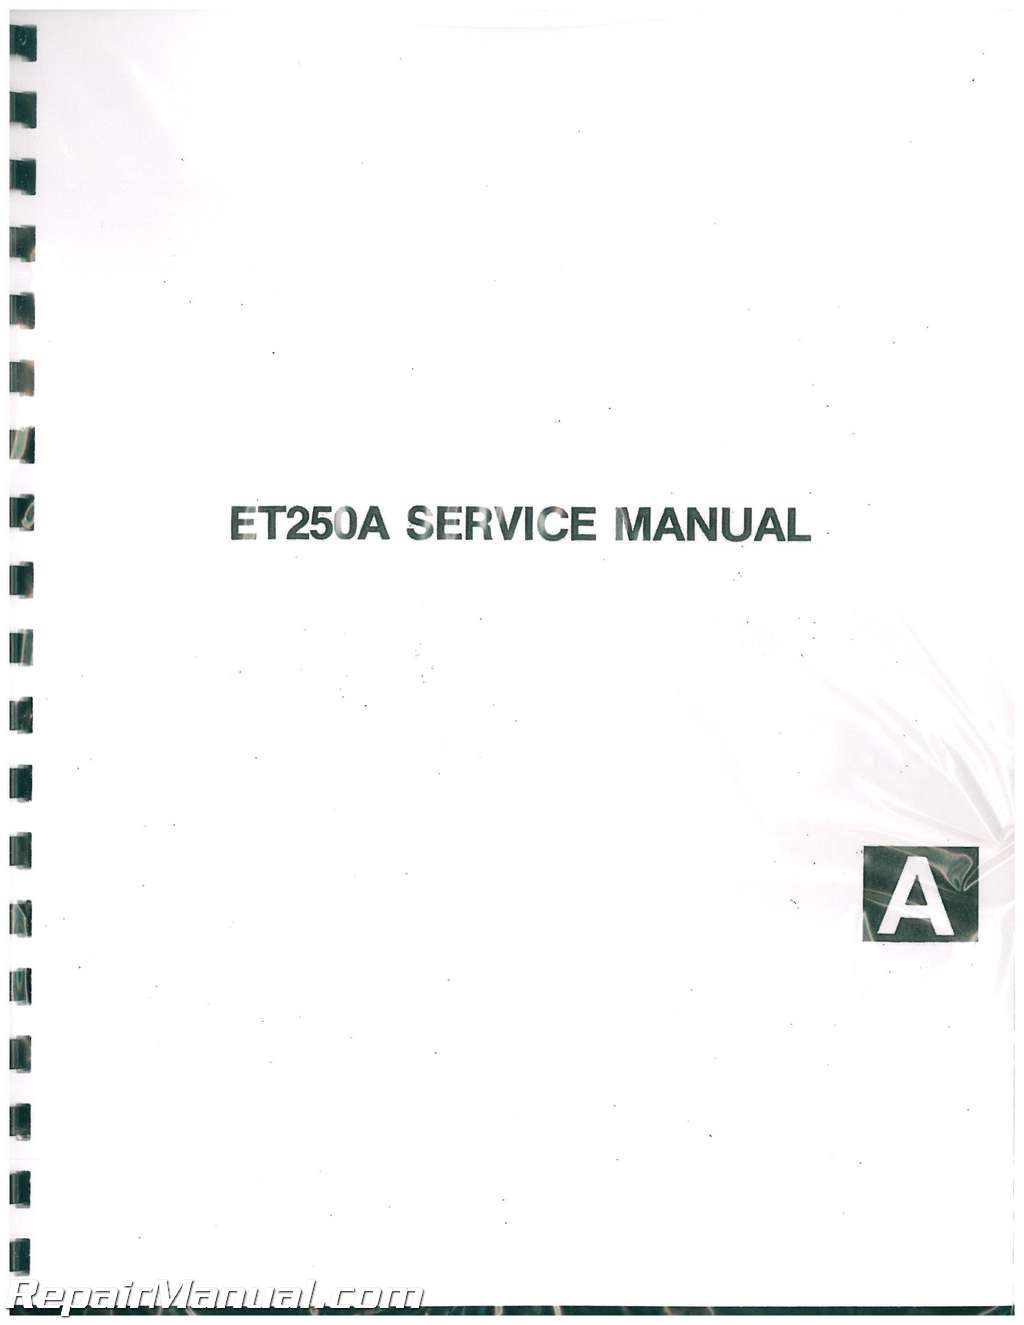 1978 1981 yamaha enticer et250 snowmobile service manual repair 1978 1981 yamaha enticer et250 snowmobile service manual 001